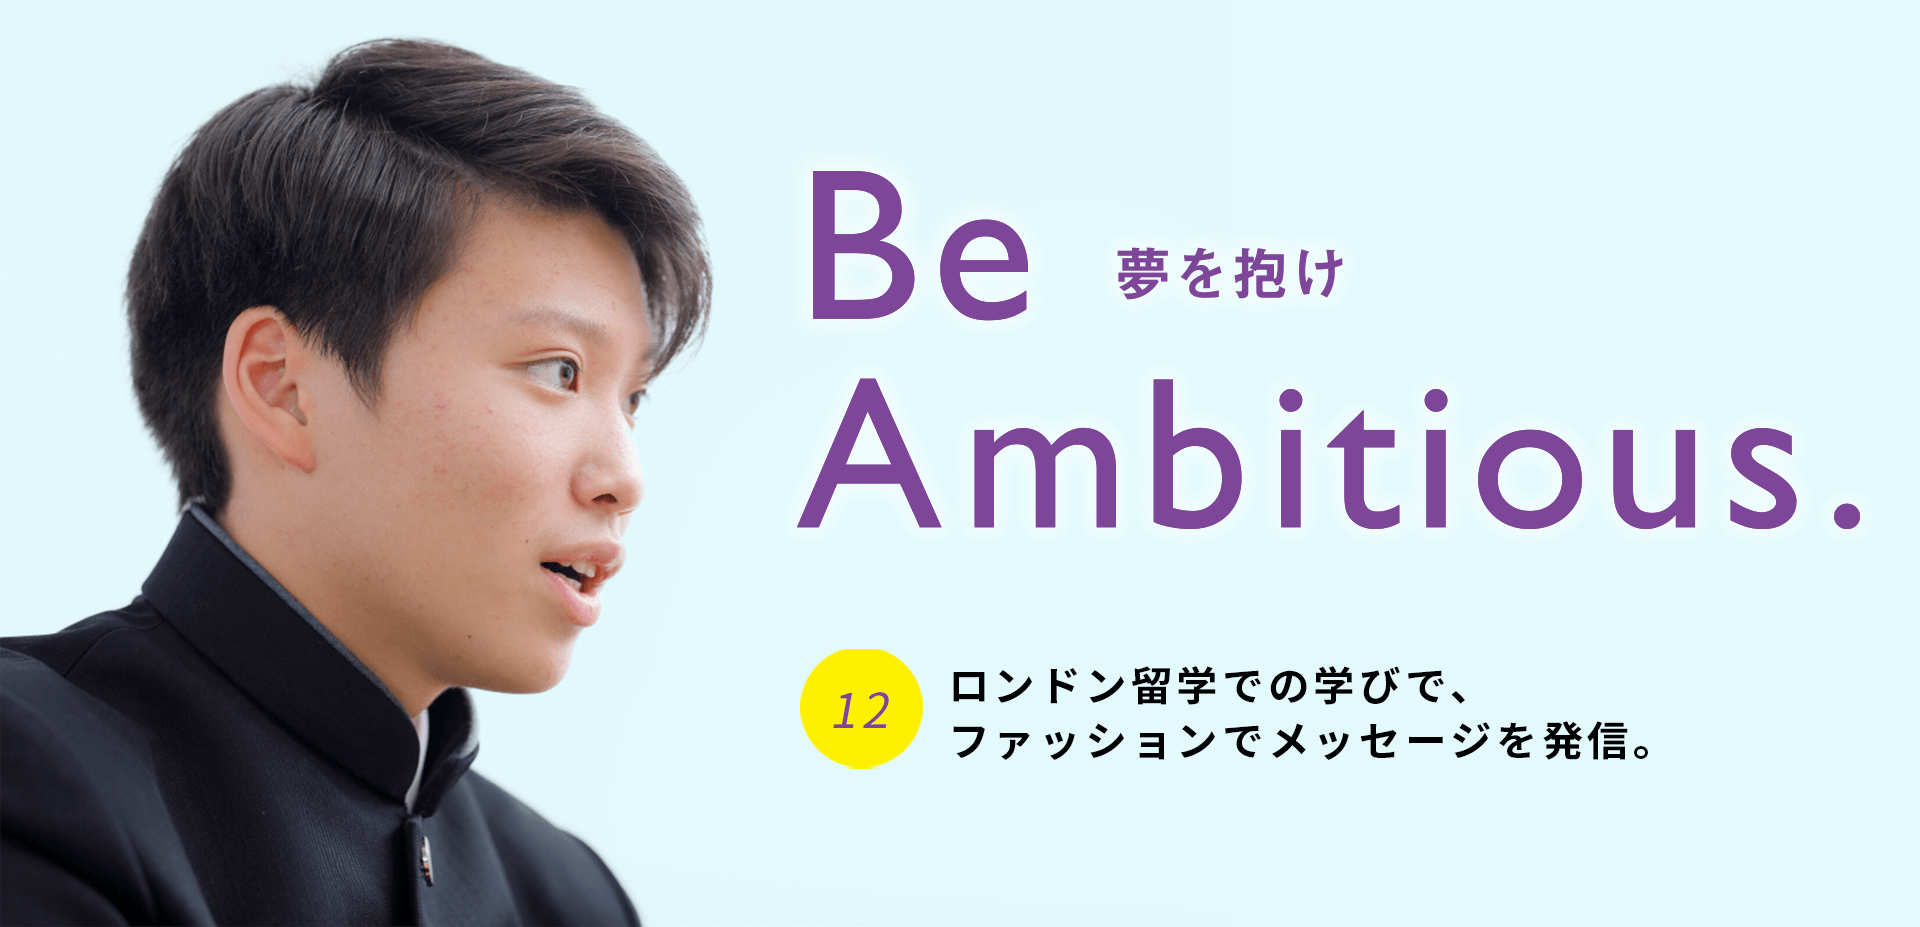 Be Ambitious.